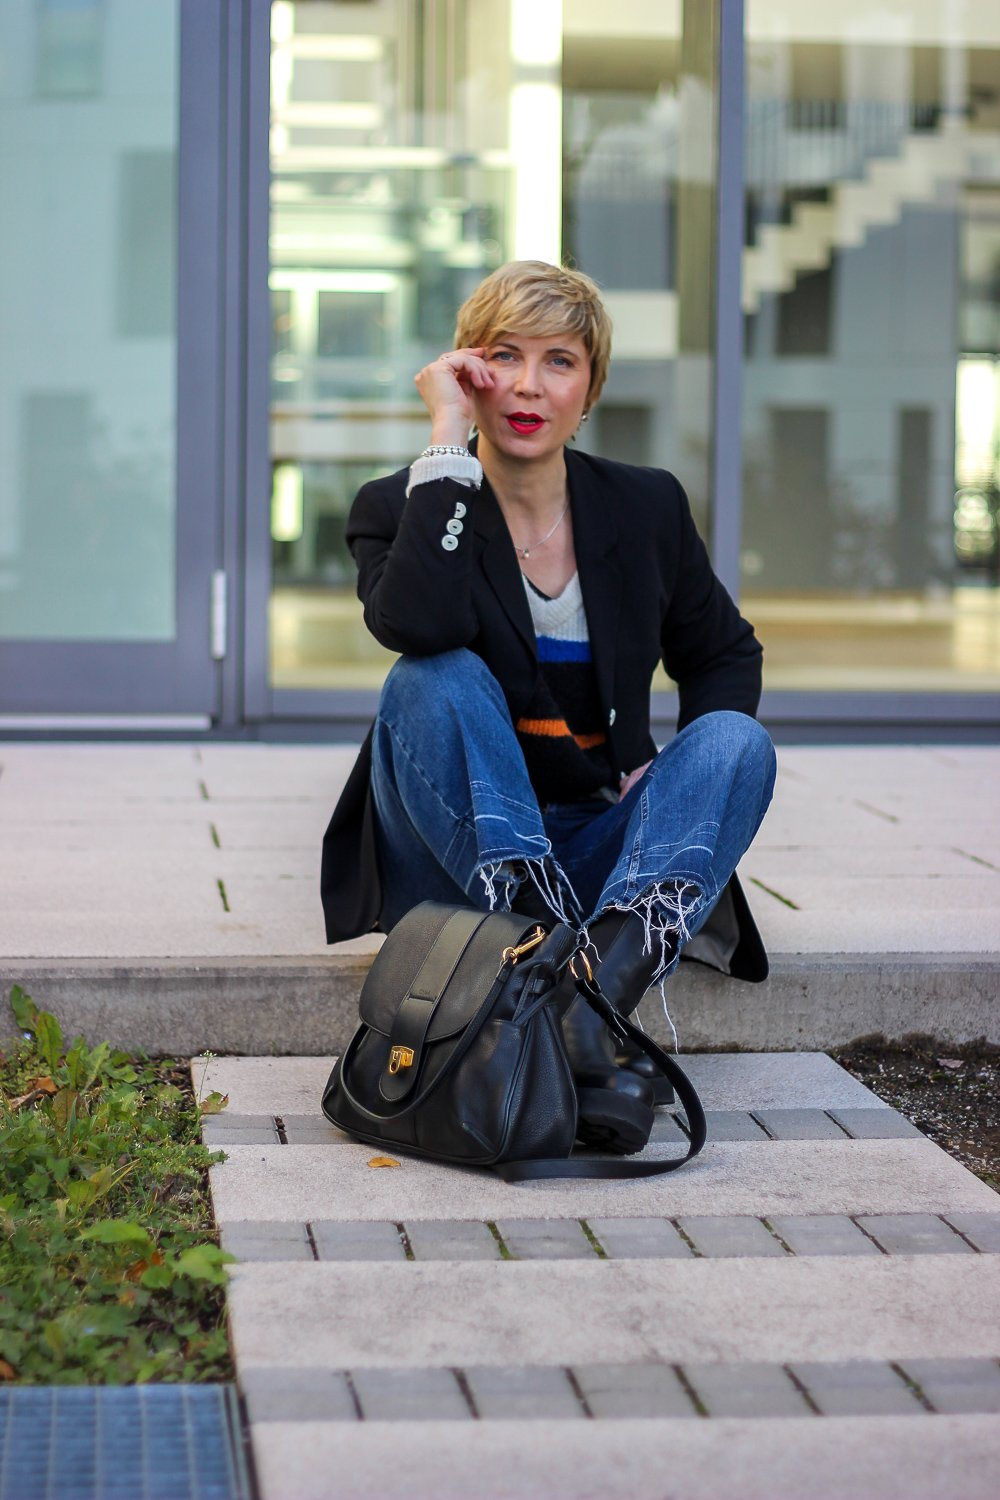 conny doll lifestyle: Jeans-Culotte - Was beachte ich beim Styling?